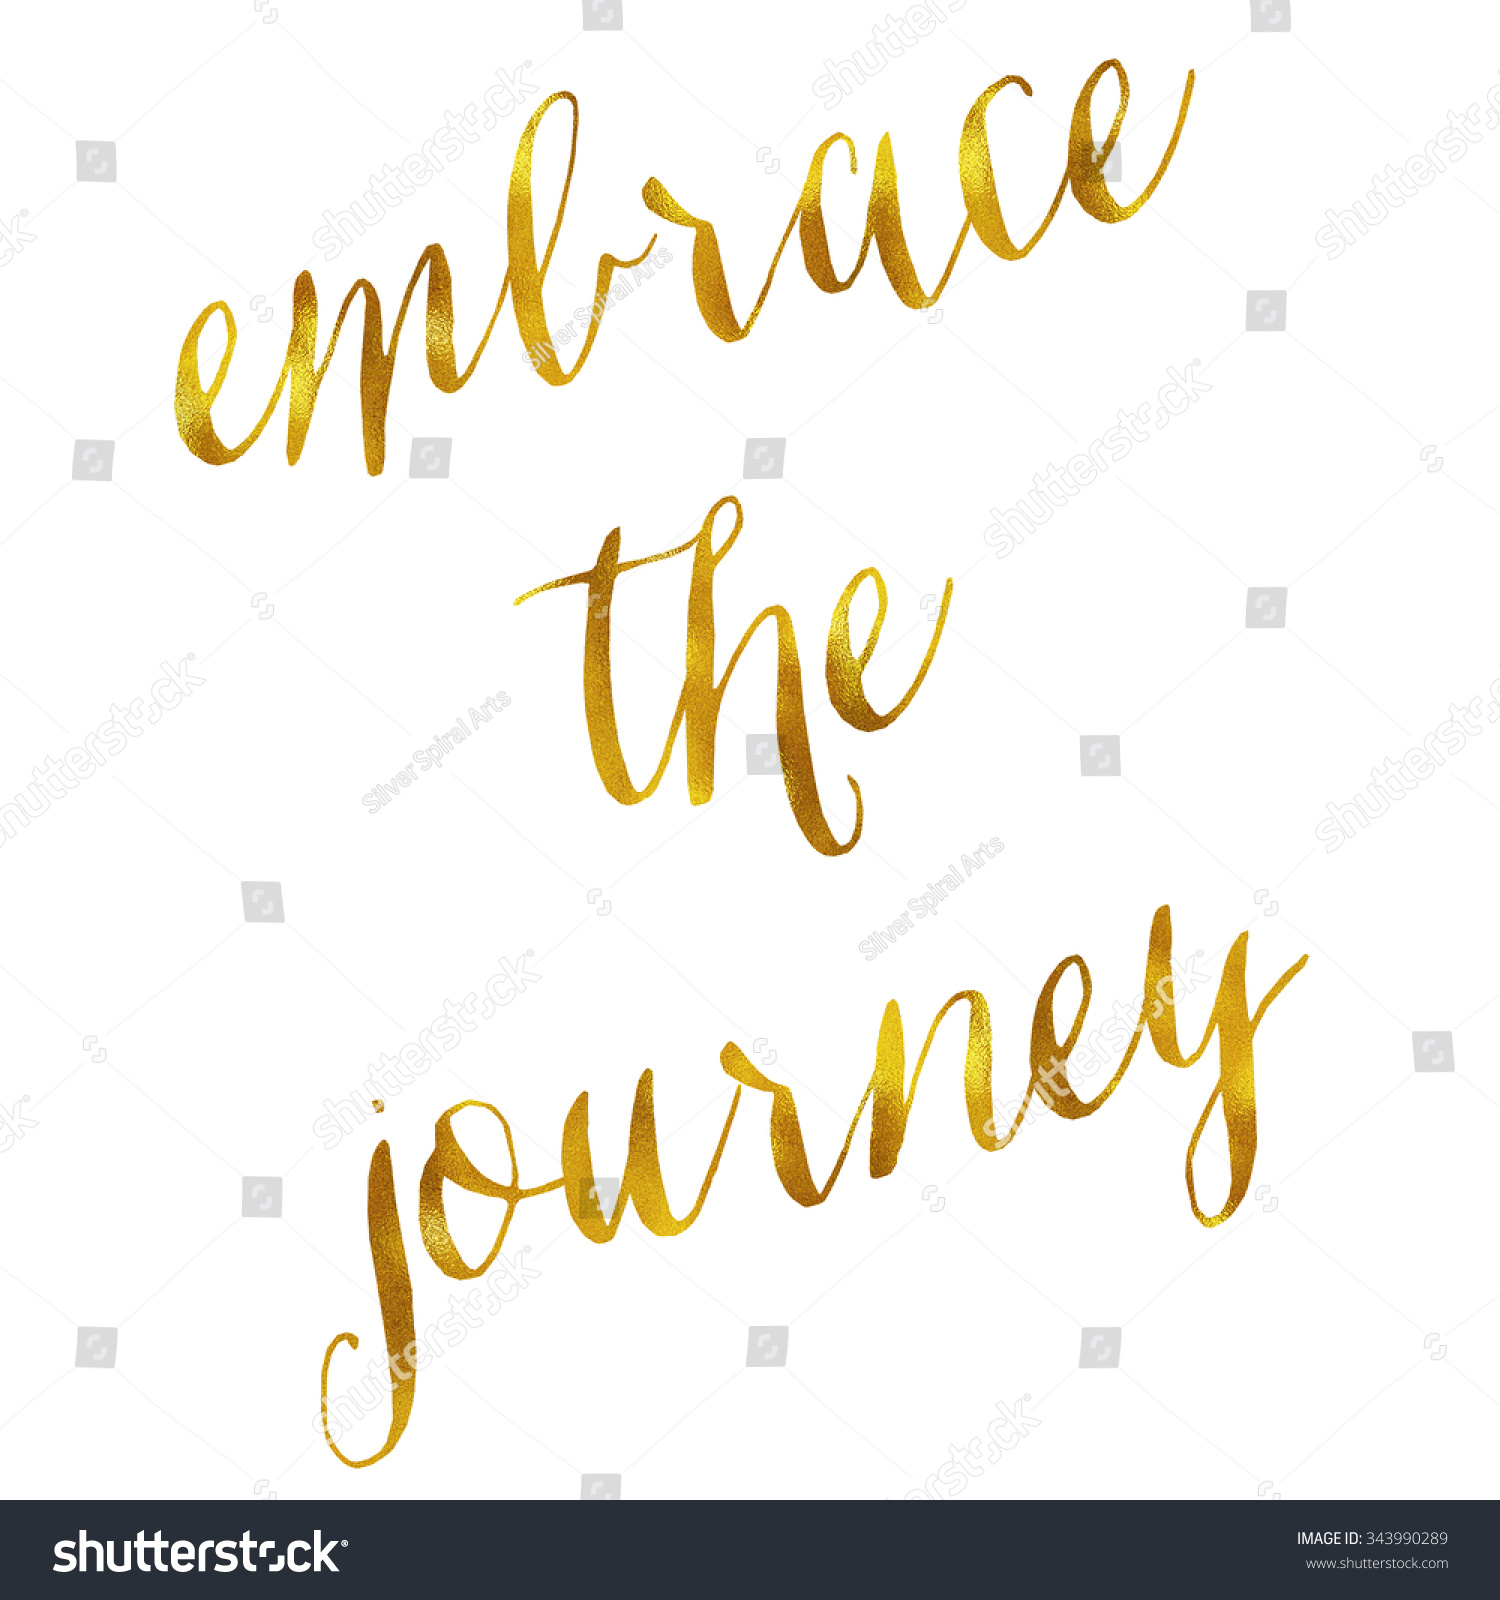 Journey Quotes Embrace Journey Quote Gold Faux Foil Stock Illustration 343990289 .